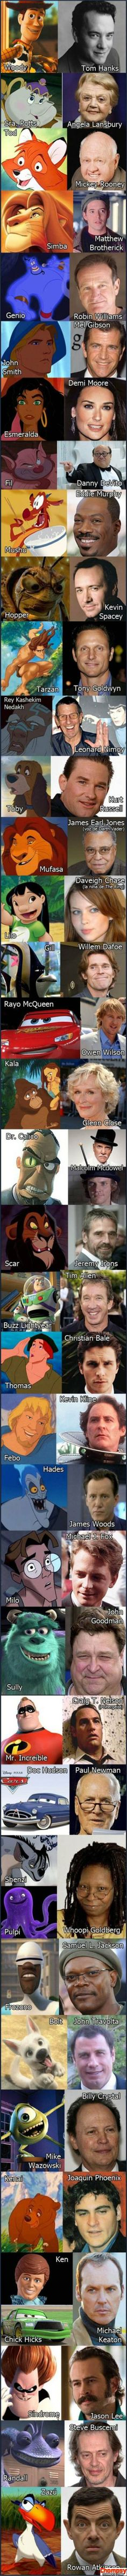 I love this because, I swear, most of these characters must have been animated based on the voice actor - LOL Disney characters and their real faces